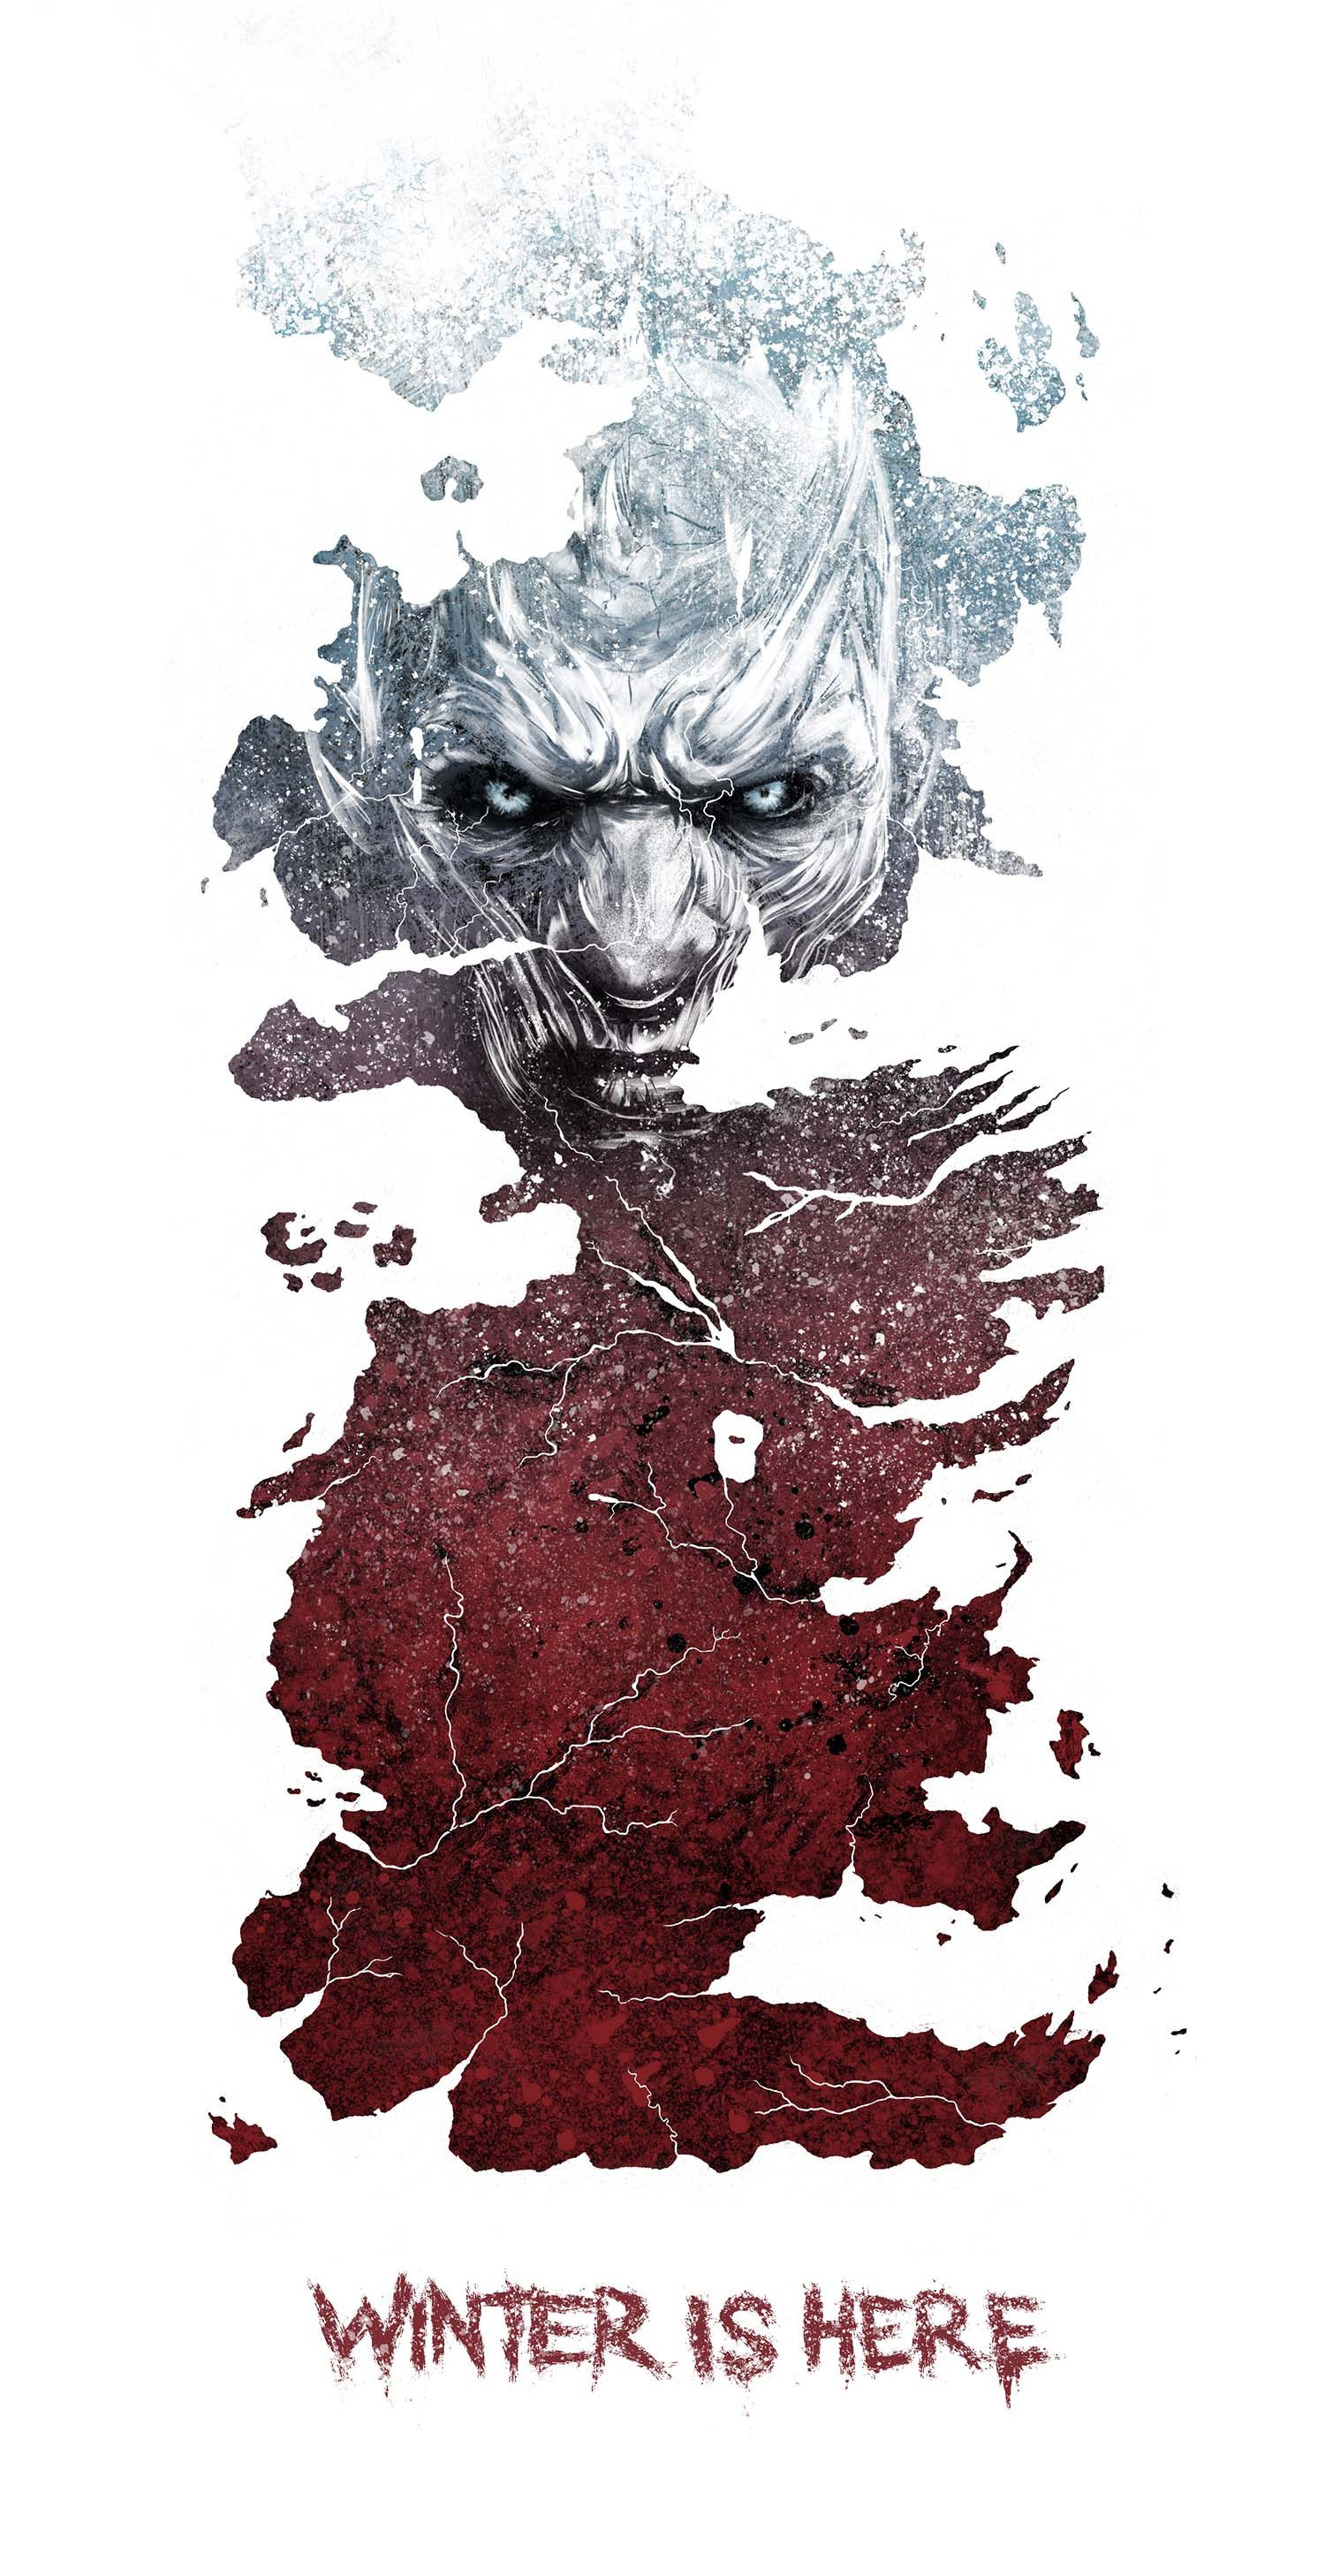 Game of Thrones : Winter is Here Neil Evans  http://neil-evans.net/blog/2016/10/16/game-of-thrones-winter-is-here